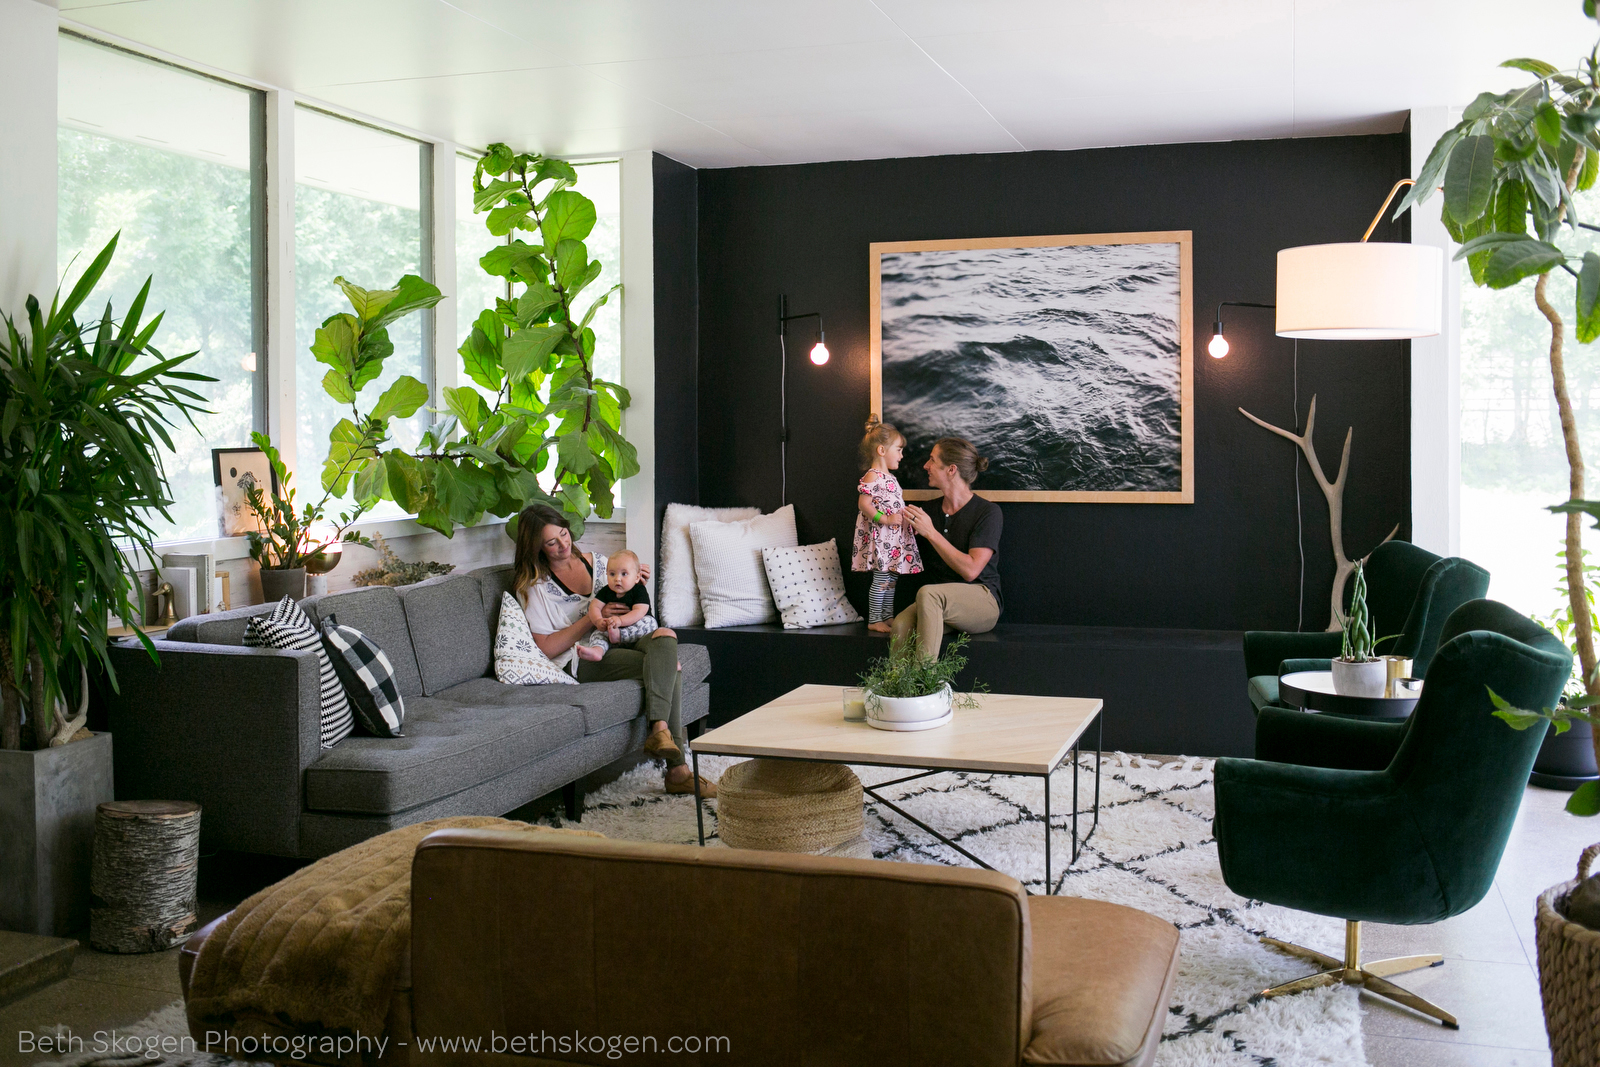 Beth Skogen Photography - Interior